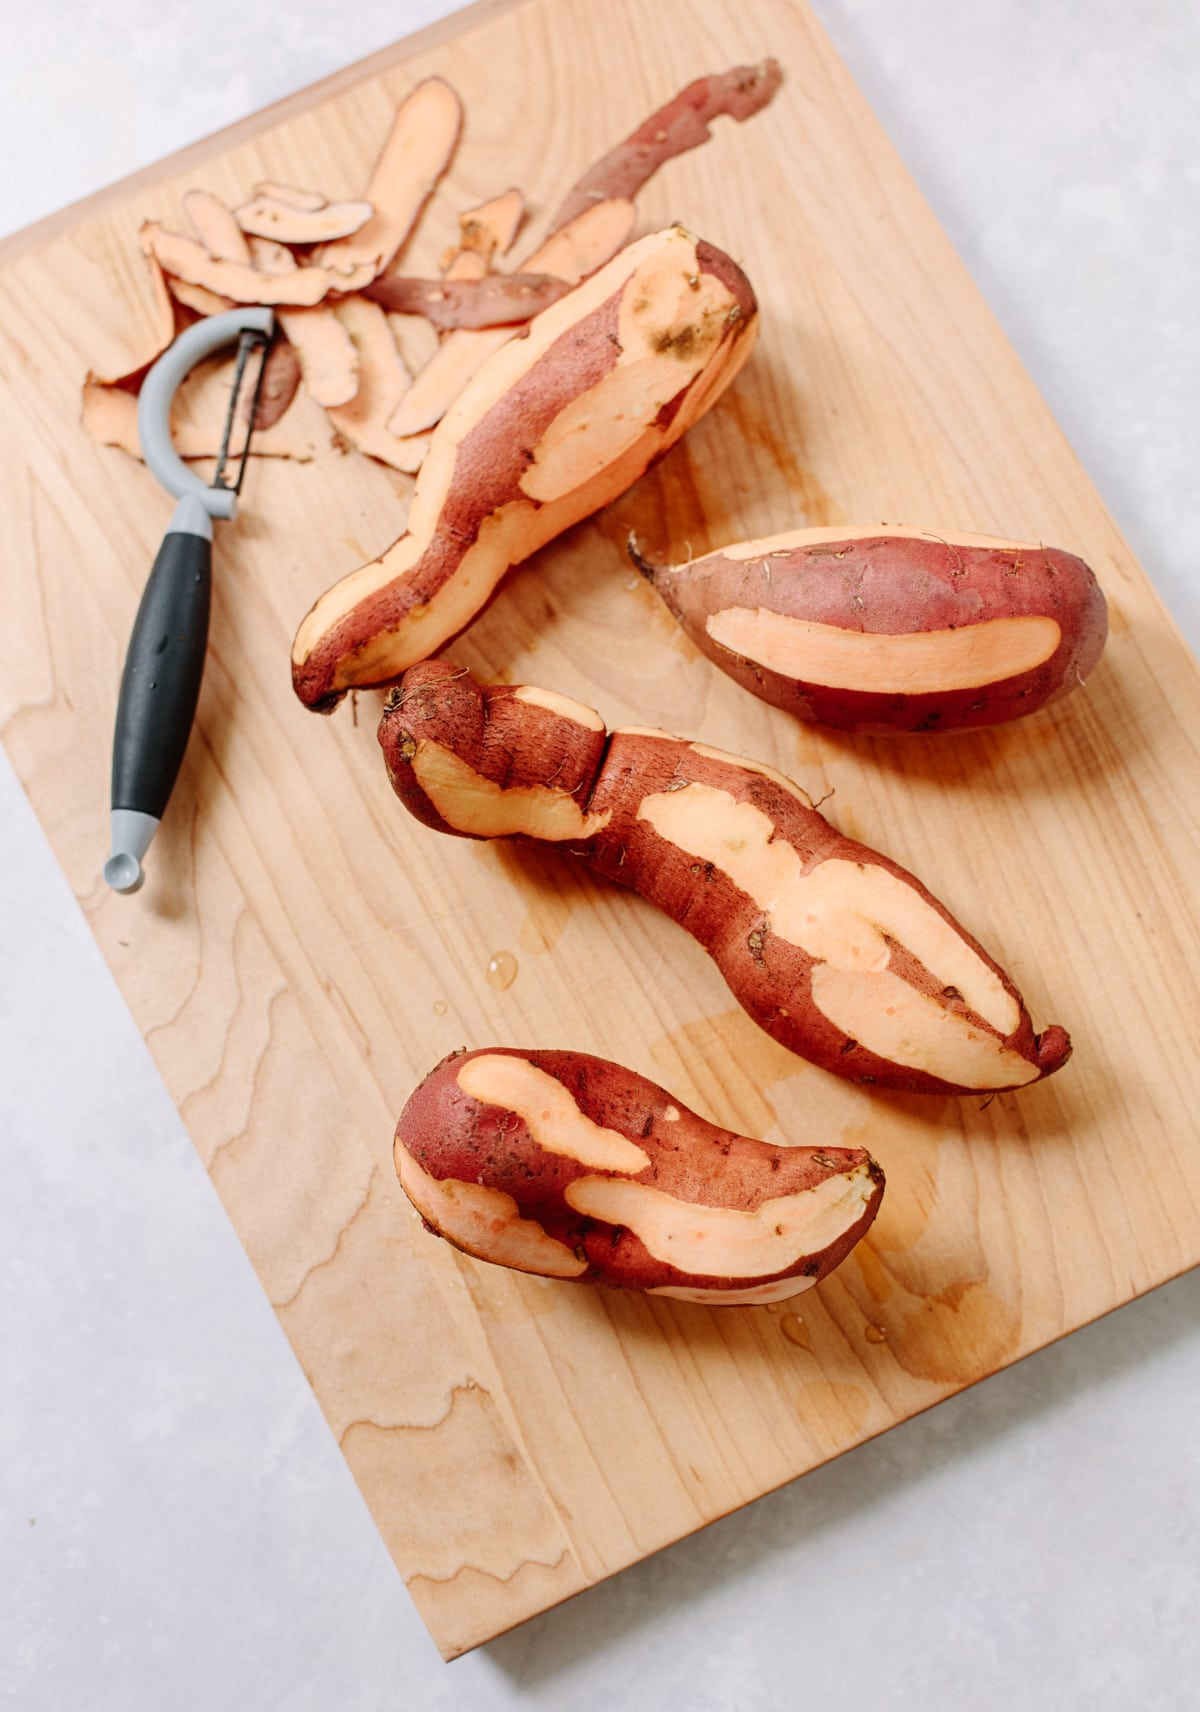 Do sweet potatoes need to be peeled?